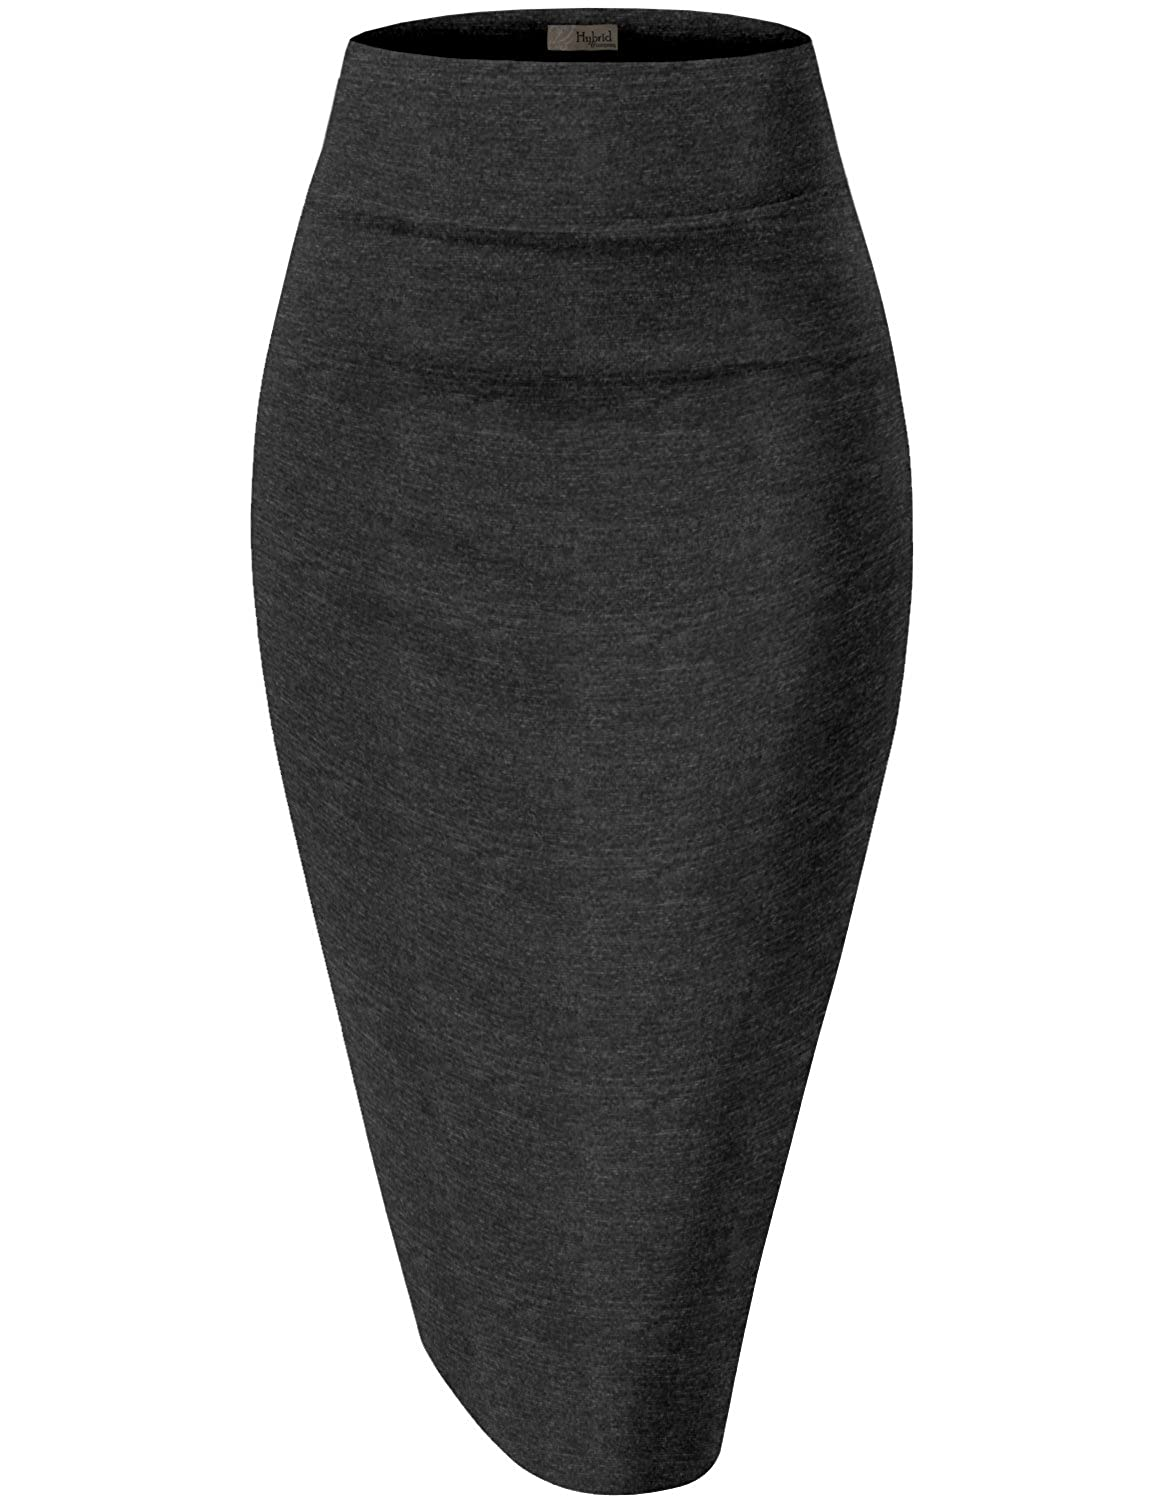 H&C Womens Premium Nylon Ponte Stretch Office Pencil Skirt Made in USA